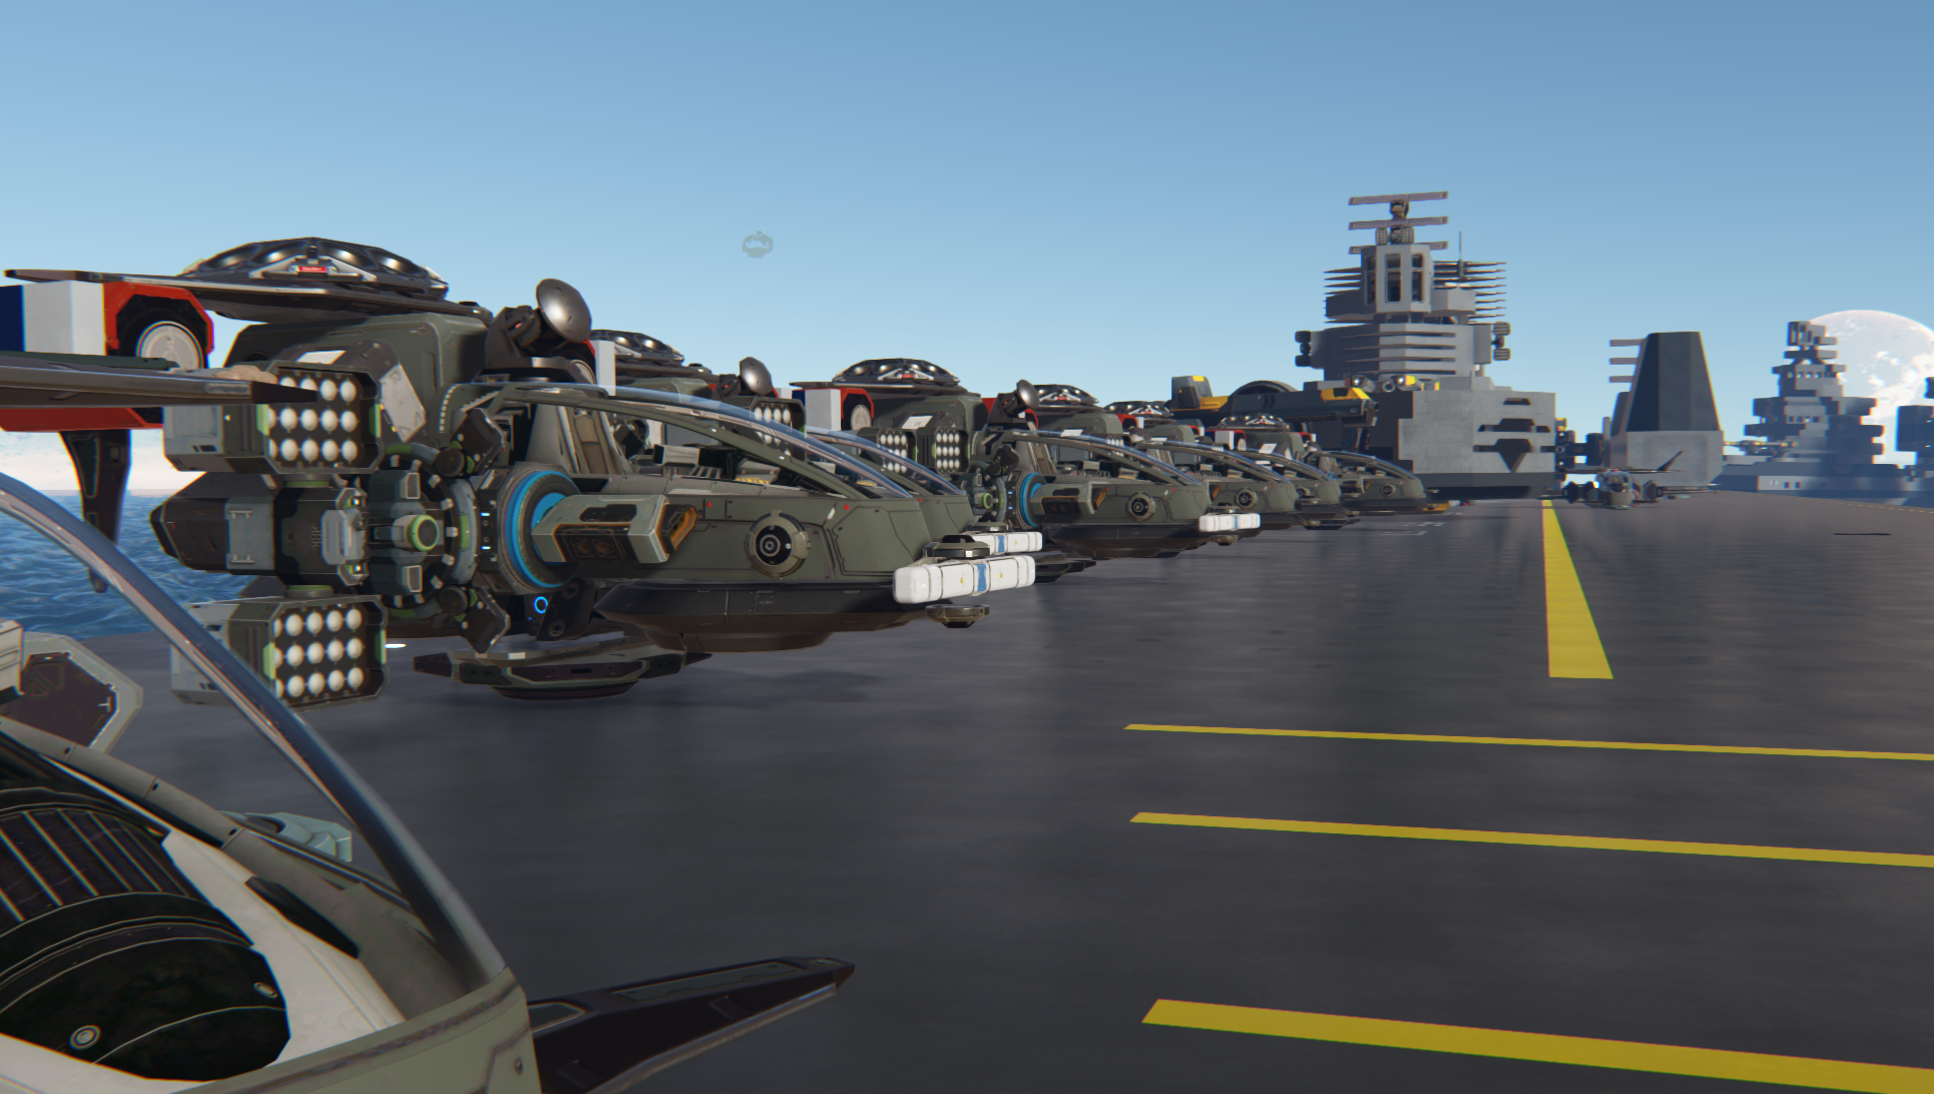 dualuniverse_2020-10-21t23h38m24s.png